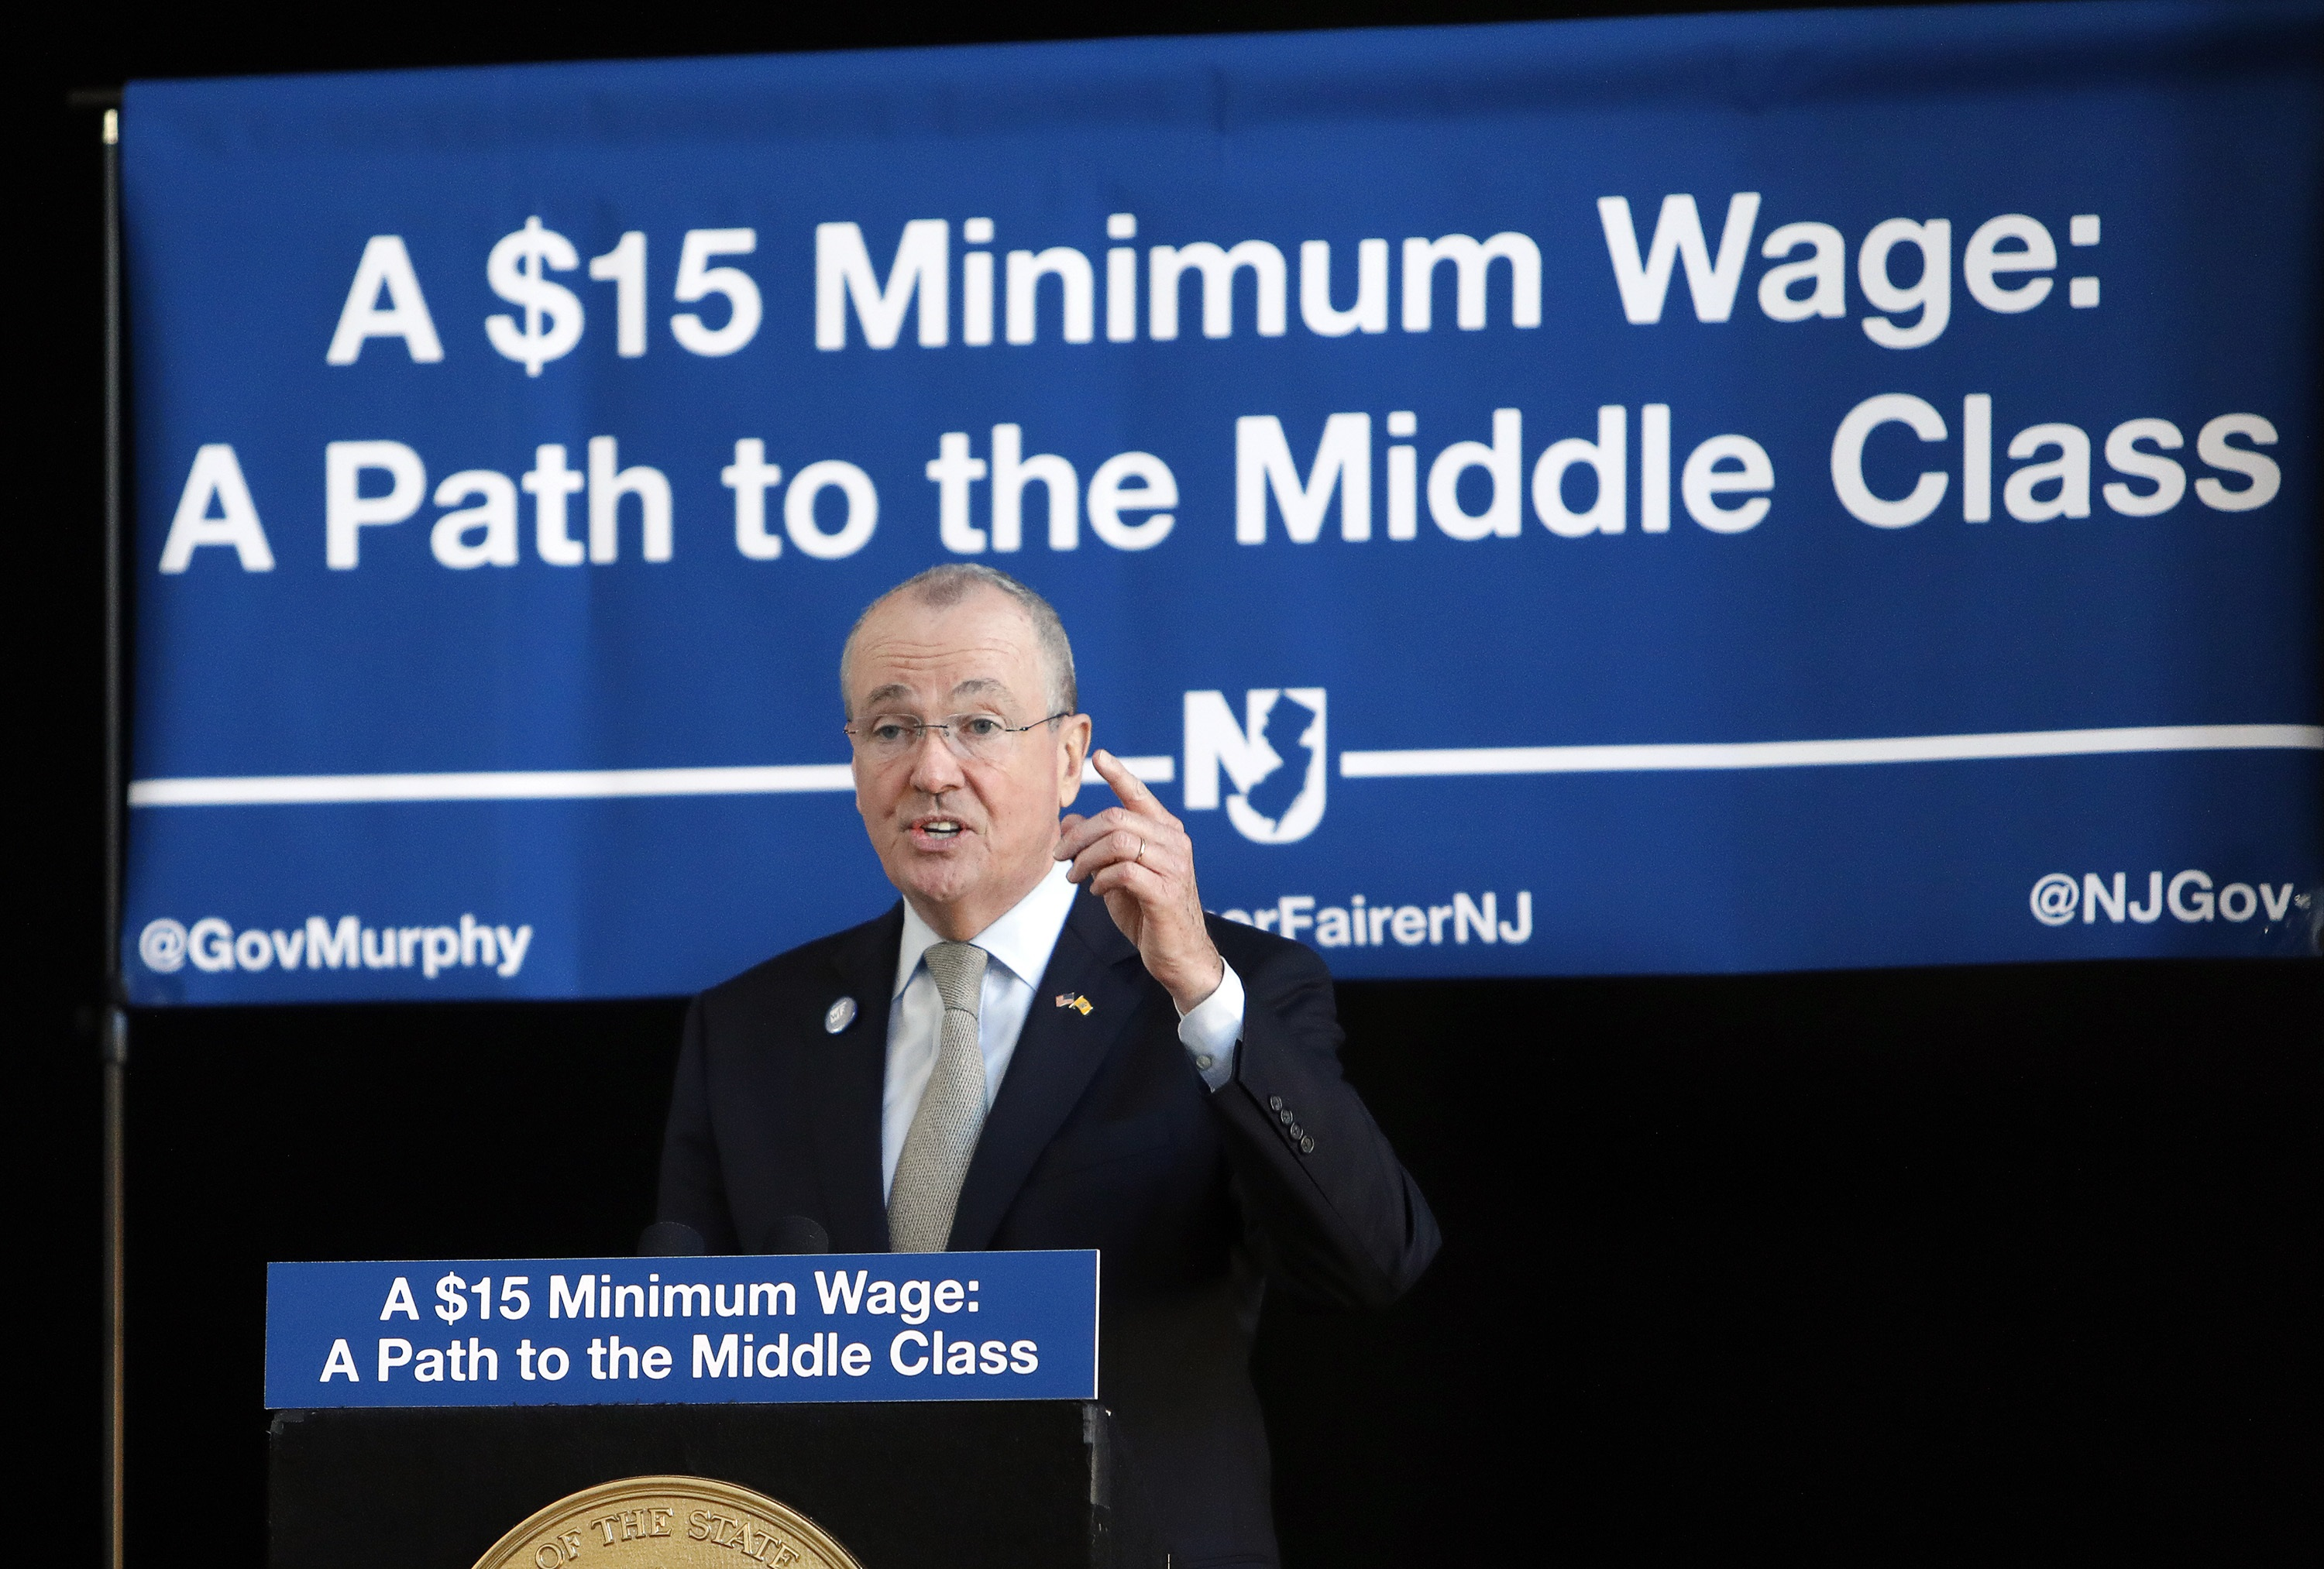 Higher minimum wage could hurt many we're trying to help | Quigley